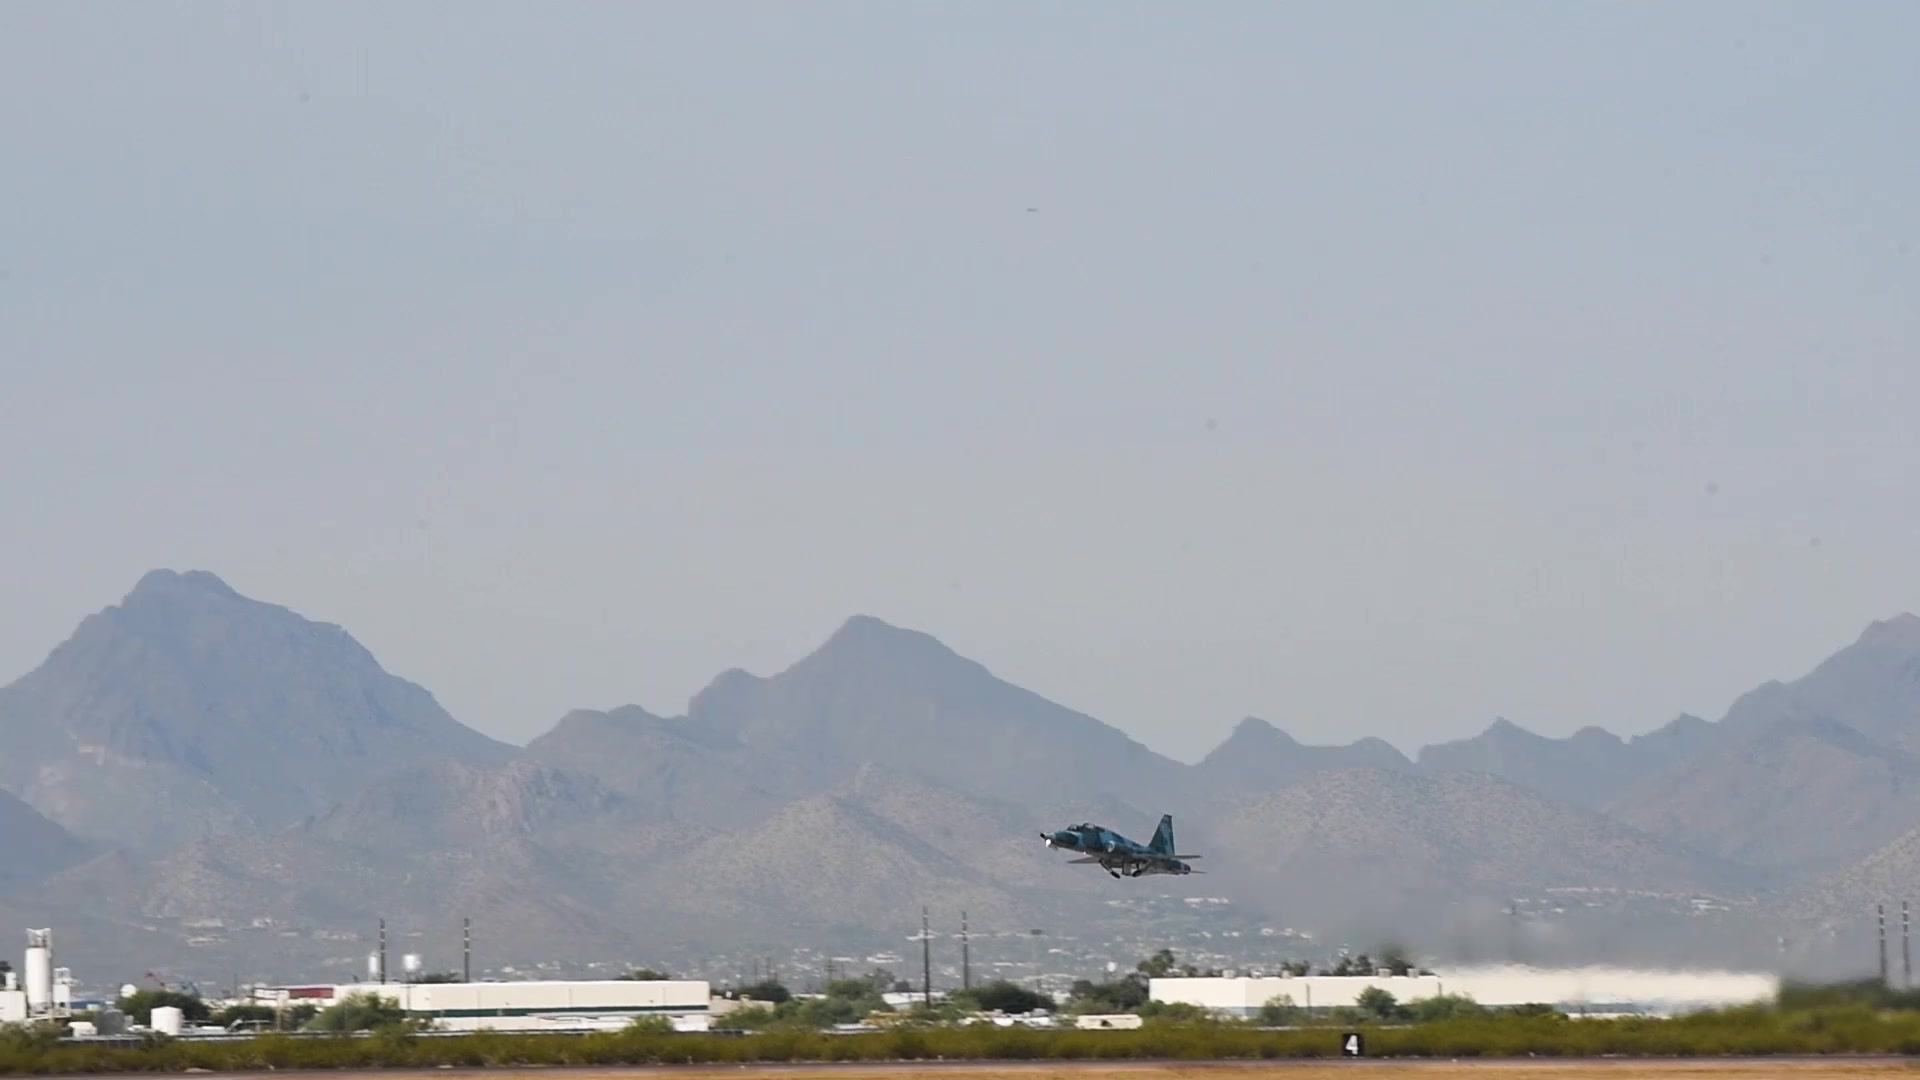 Story on pilots from Sheppard Air Force Base flying T-38 Talons while on temporary duty at Davis-Monthan Air Force Base is support of training conducted by Luke Air Force Base.